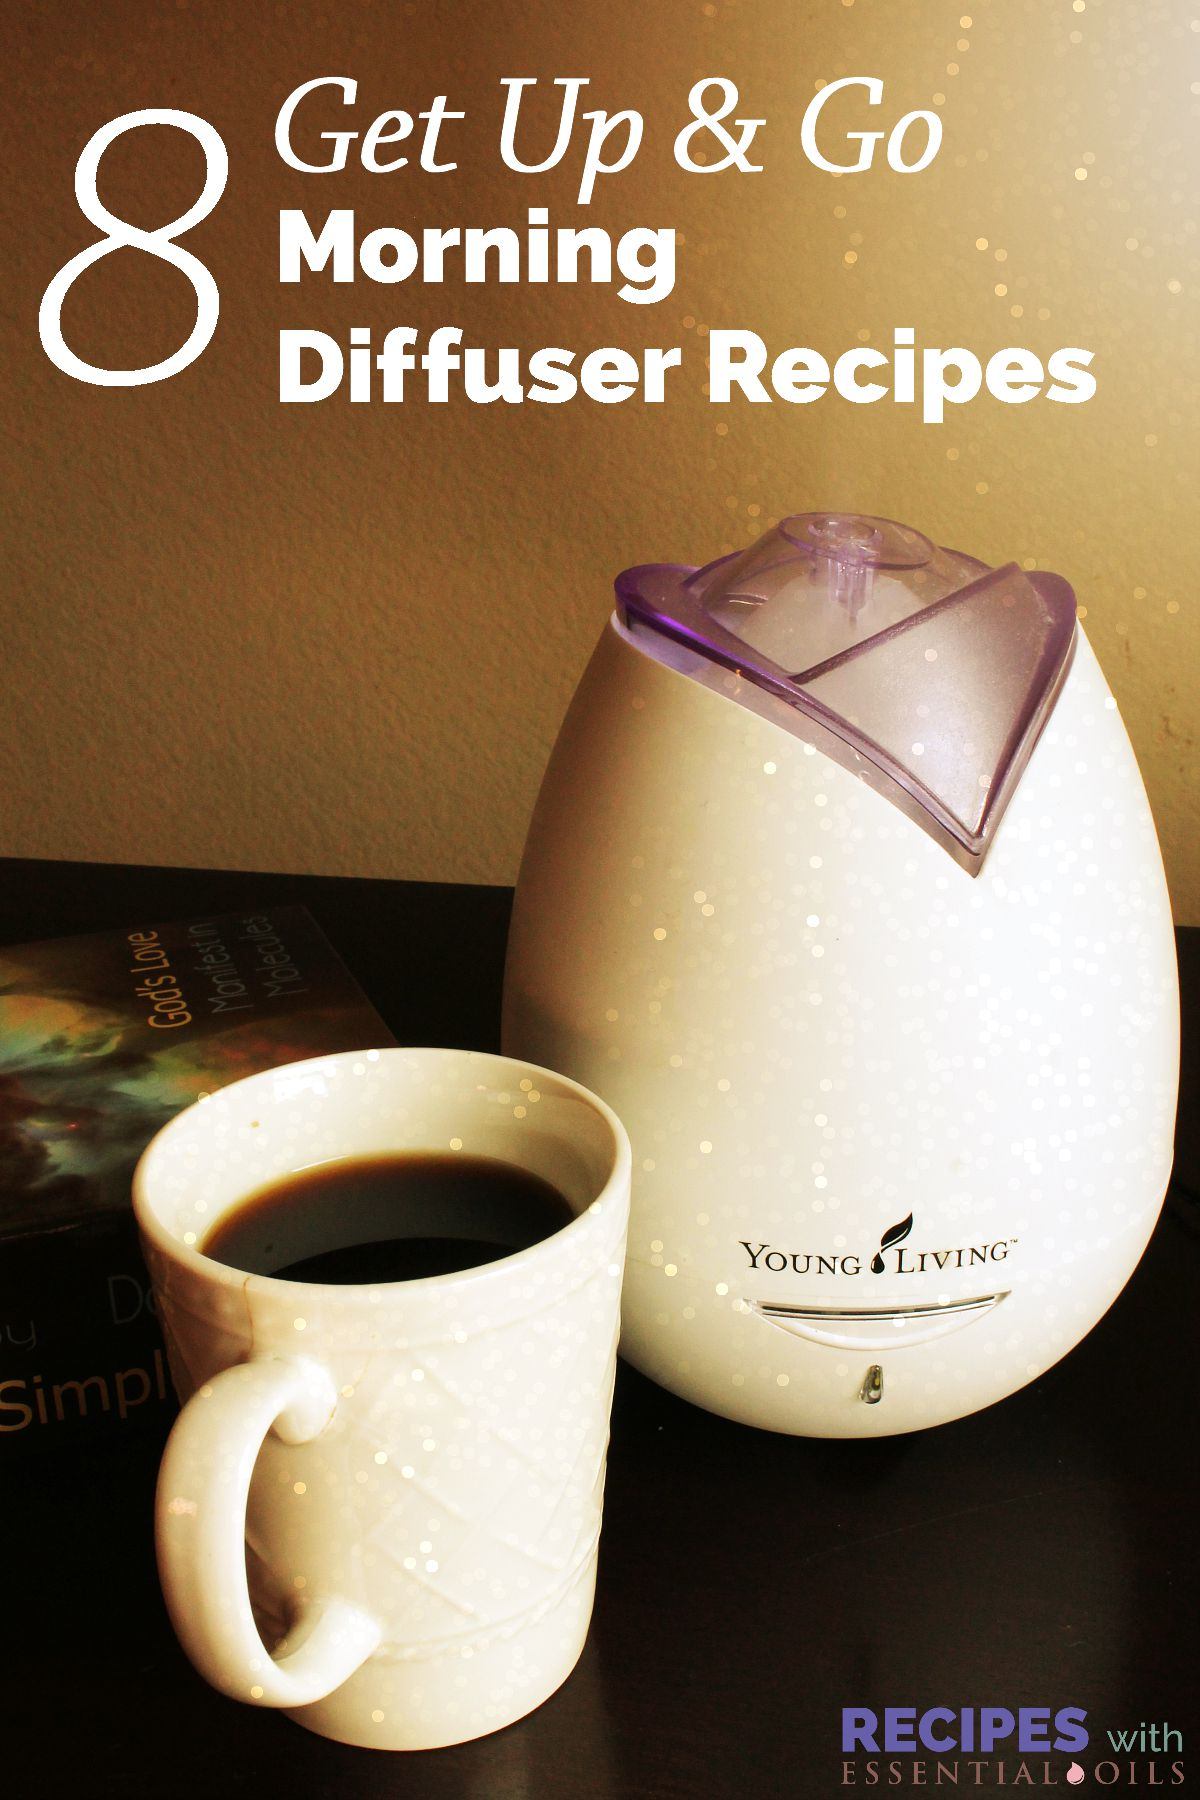 8 Get Up & Go Morning Diffuser Recipes - Recipes with ...